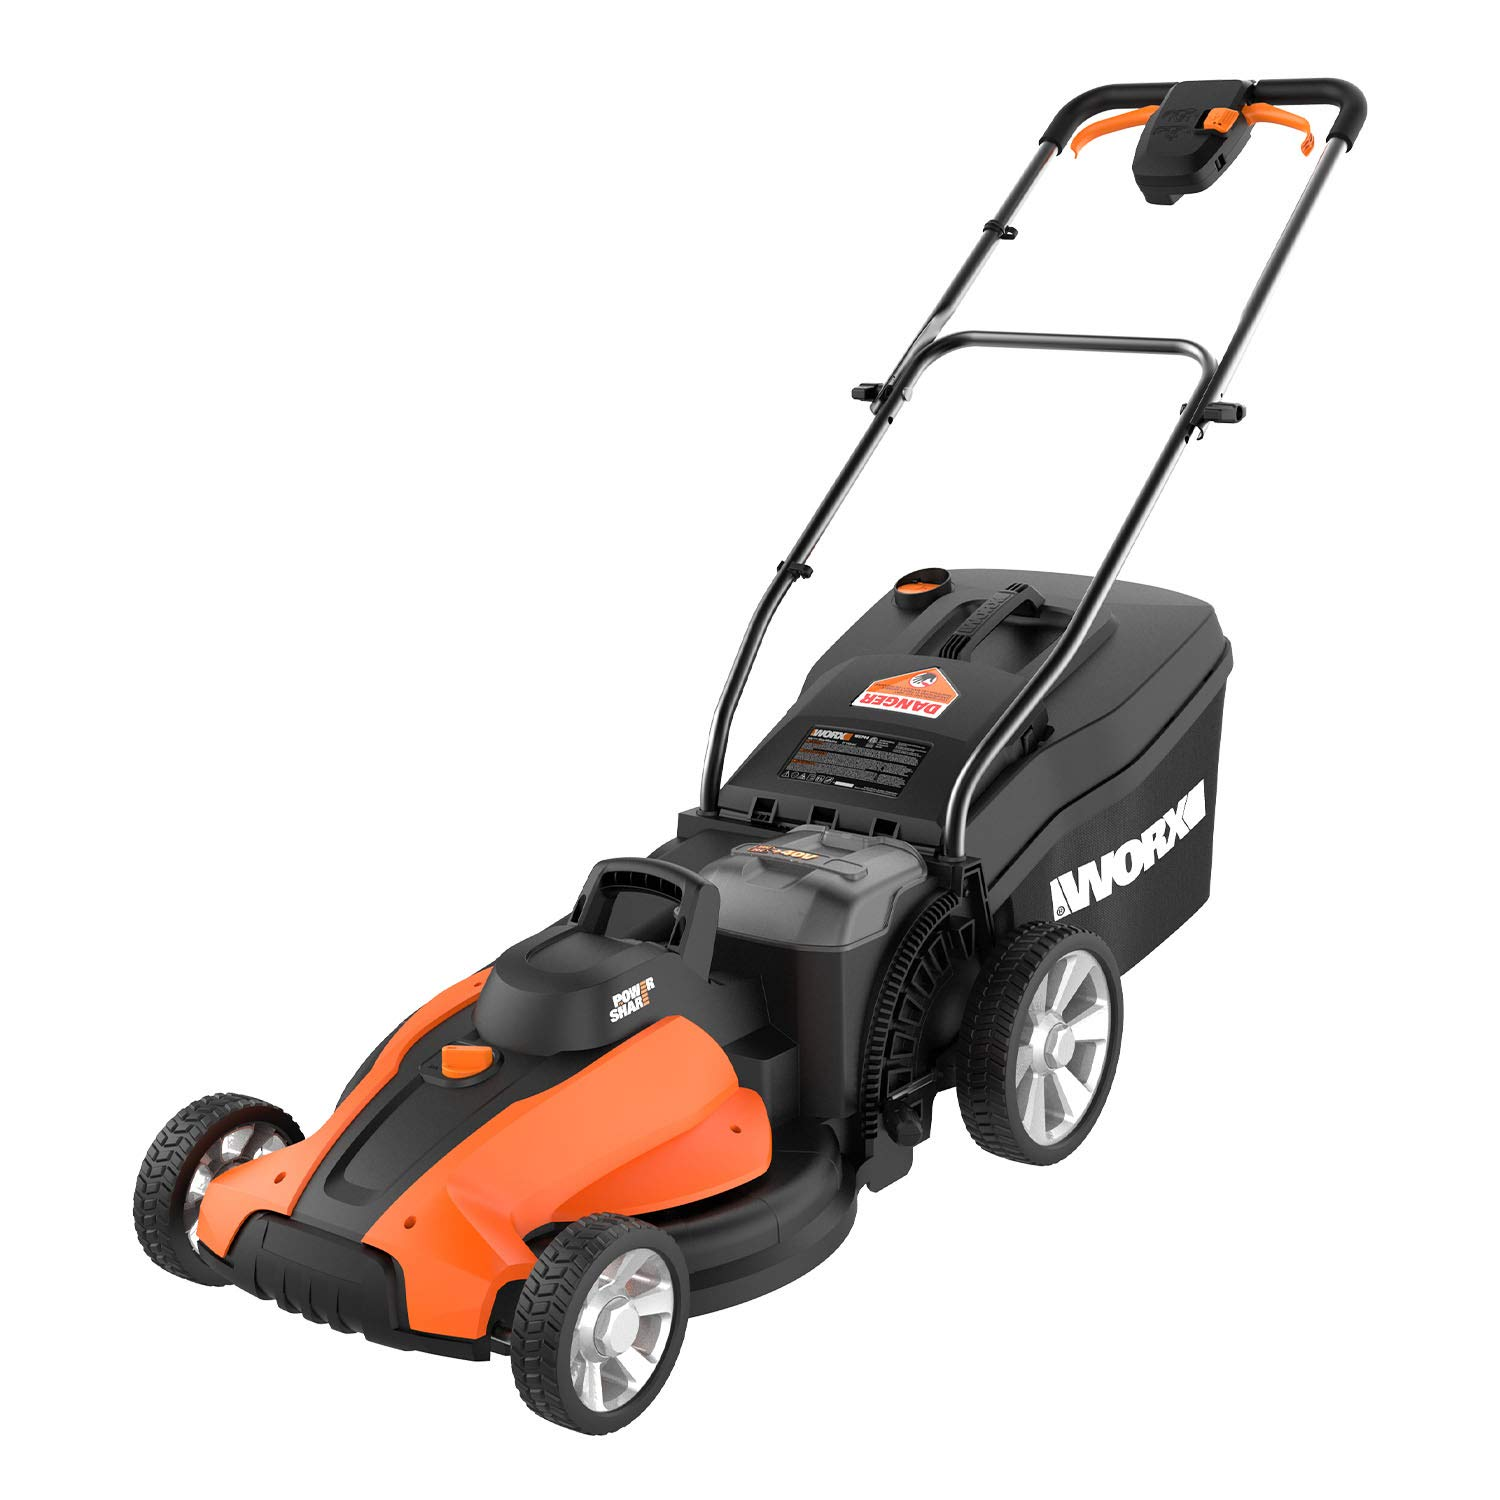 Worx WG744 17-inch 2x20V (4.0Ah) Cordless Lawn Mower, 2 Batteries and Charger Included by WORX